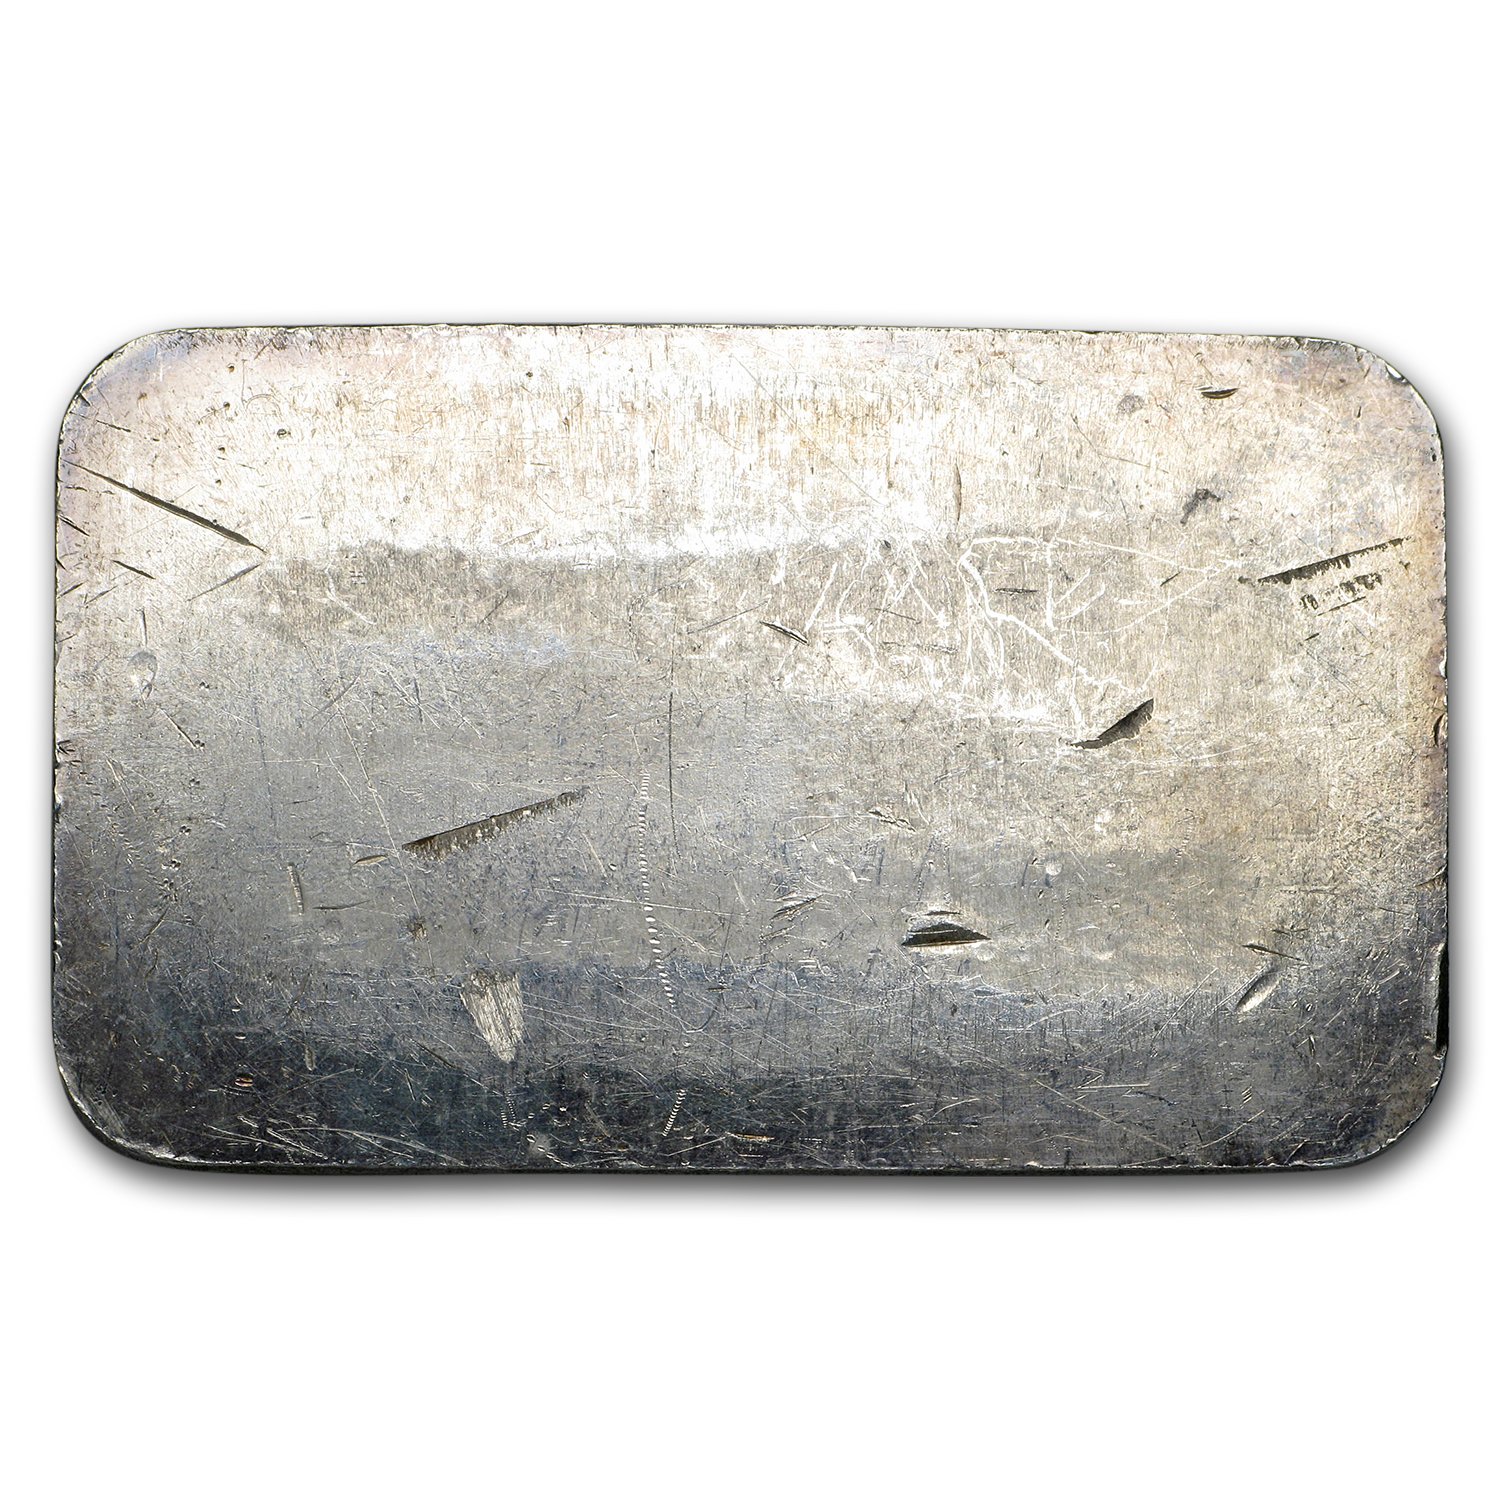 5 oz Silver Bars - Engelhard (Pressed)